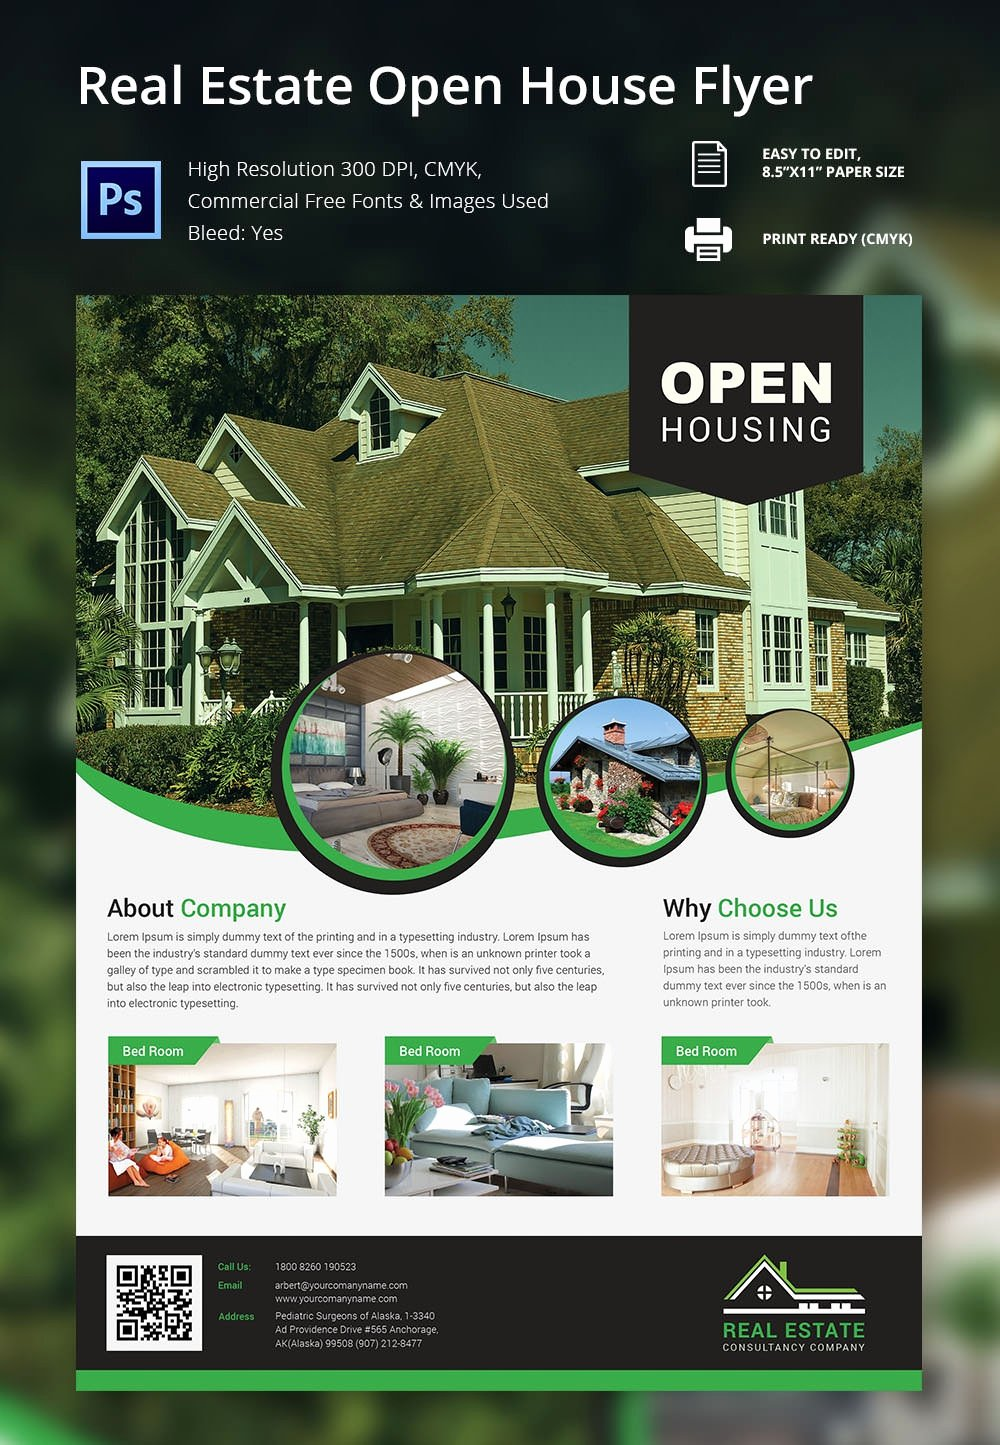 Real Estate Open House Template Elegant Open House Flyer Template – 30 Free Psd format Download